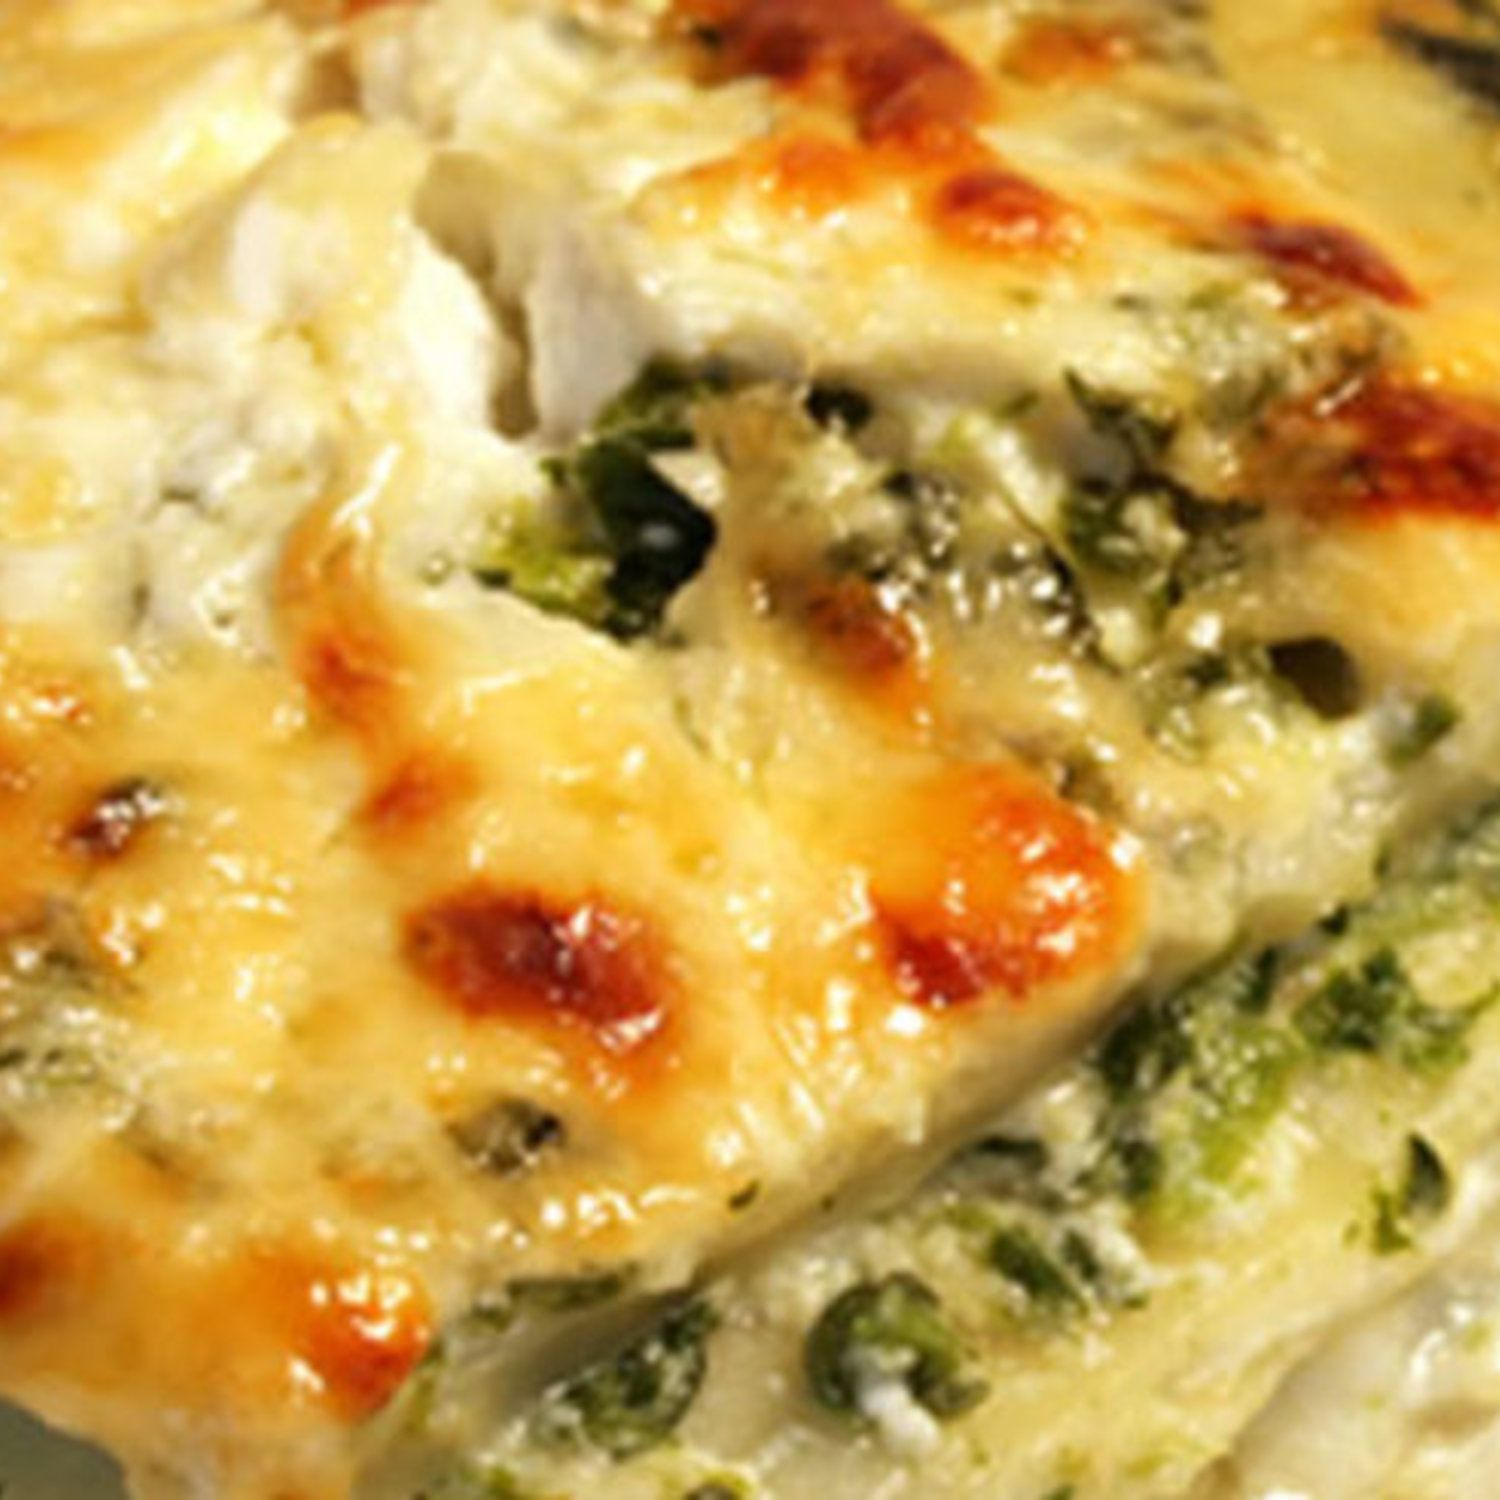 Creamy Perfection Vegetarian Lasagna With Ricotta Cheese Recipe Vegetable Lasagna Recipes Best Vegetarian Lasagna Vegetarian Lasagna Recipe